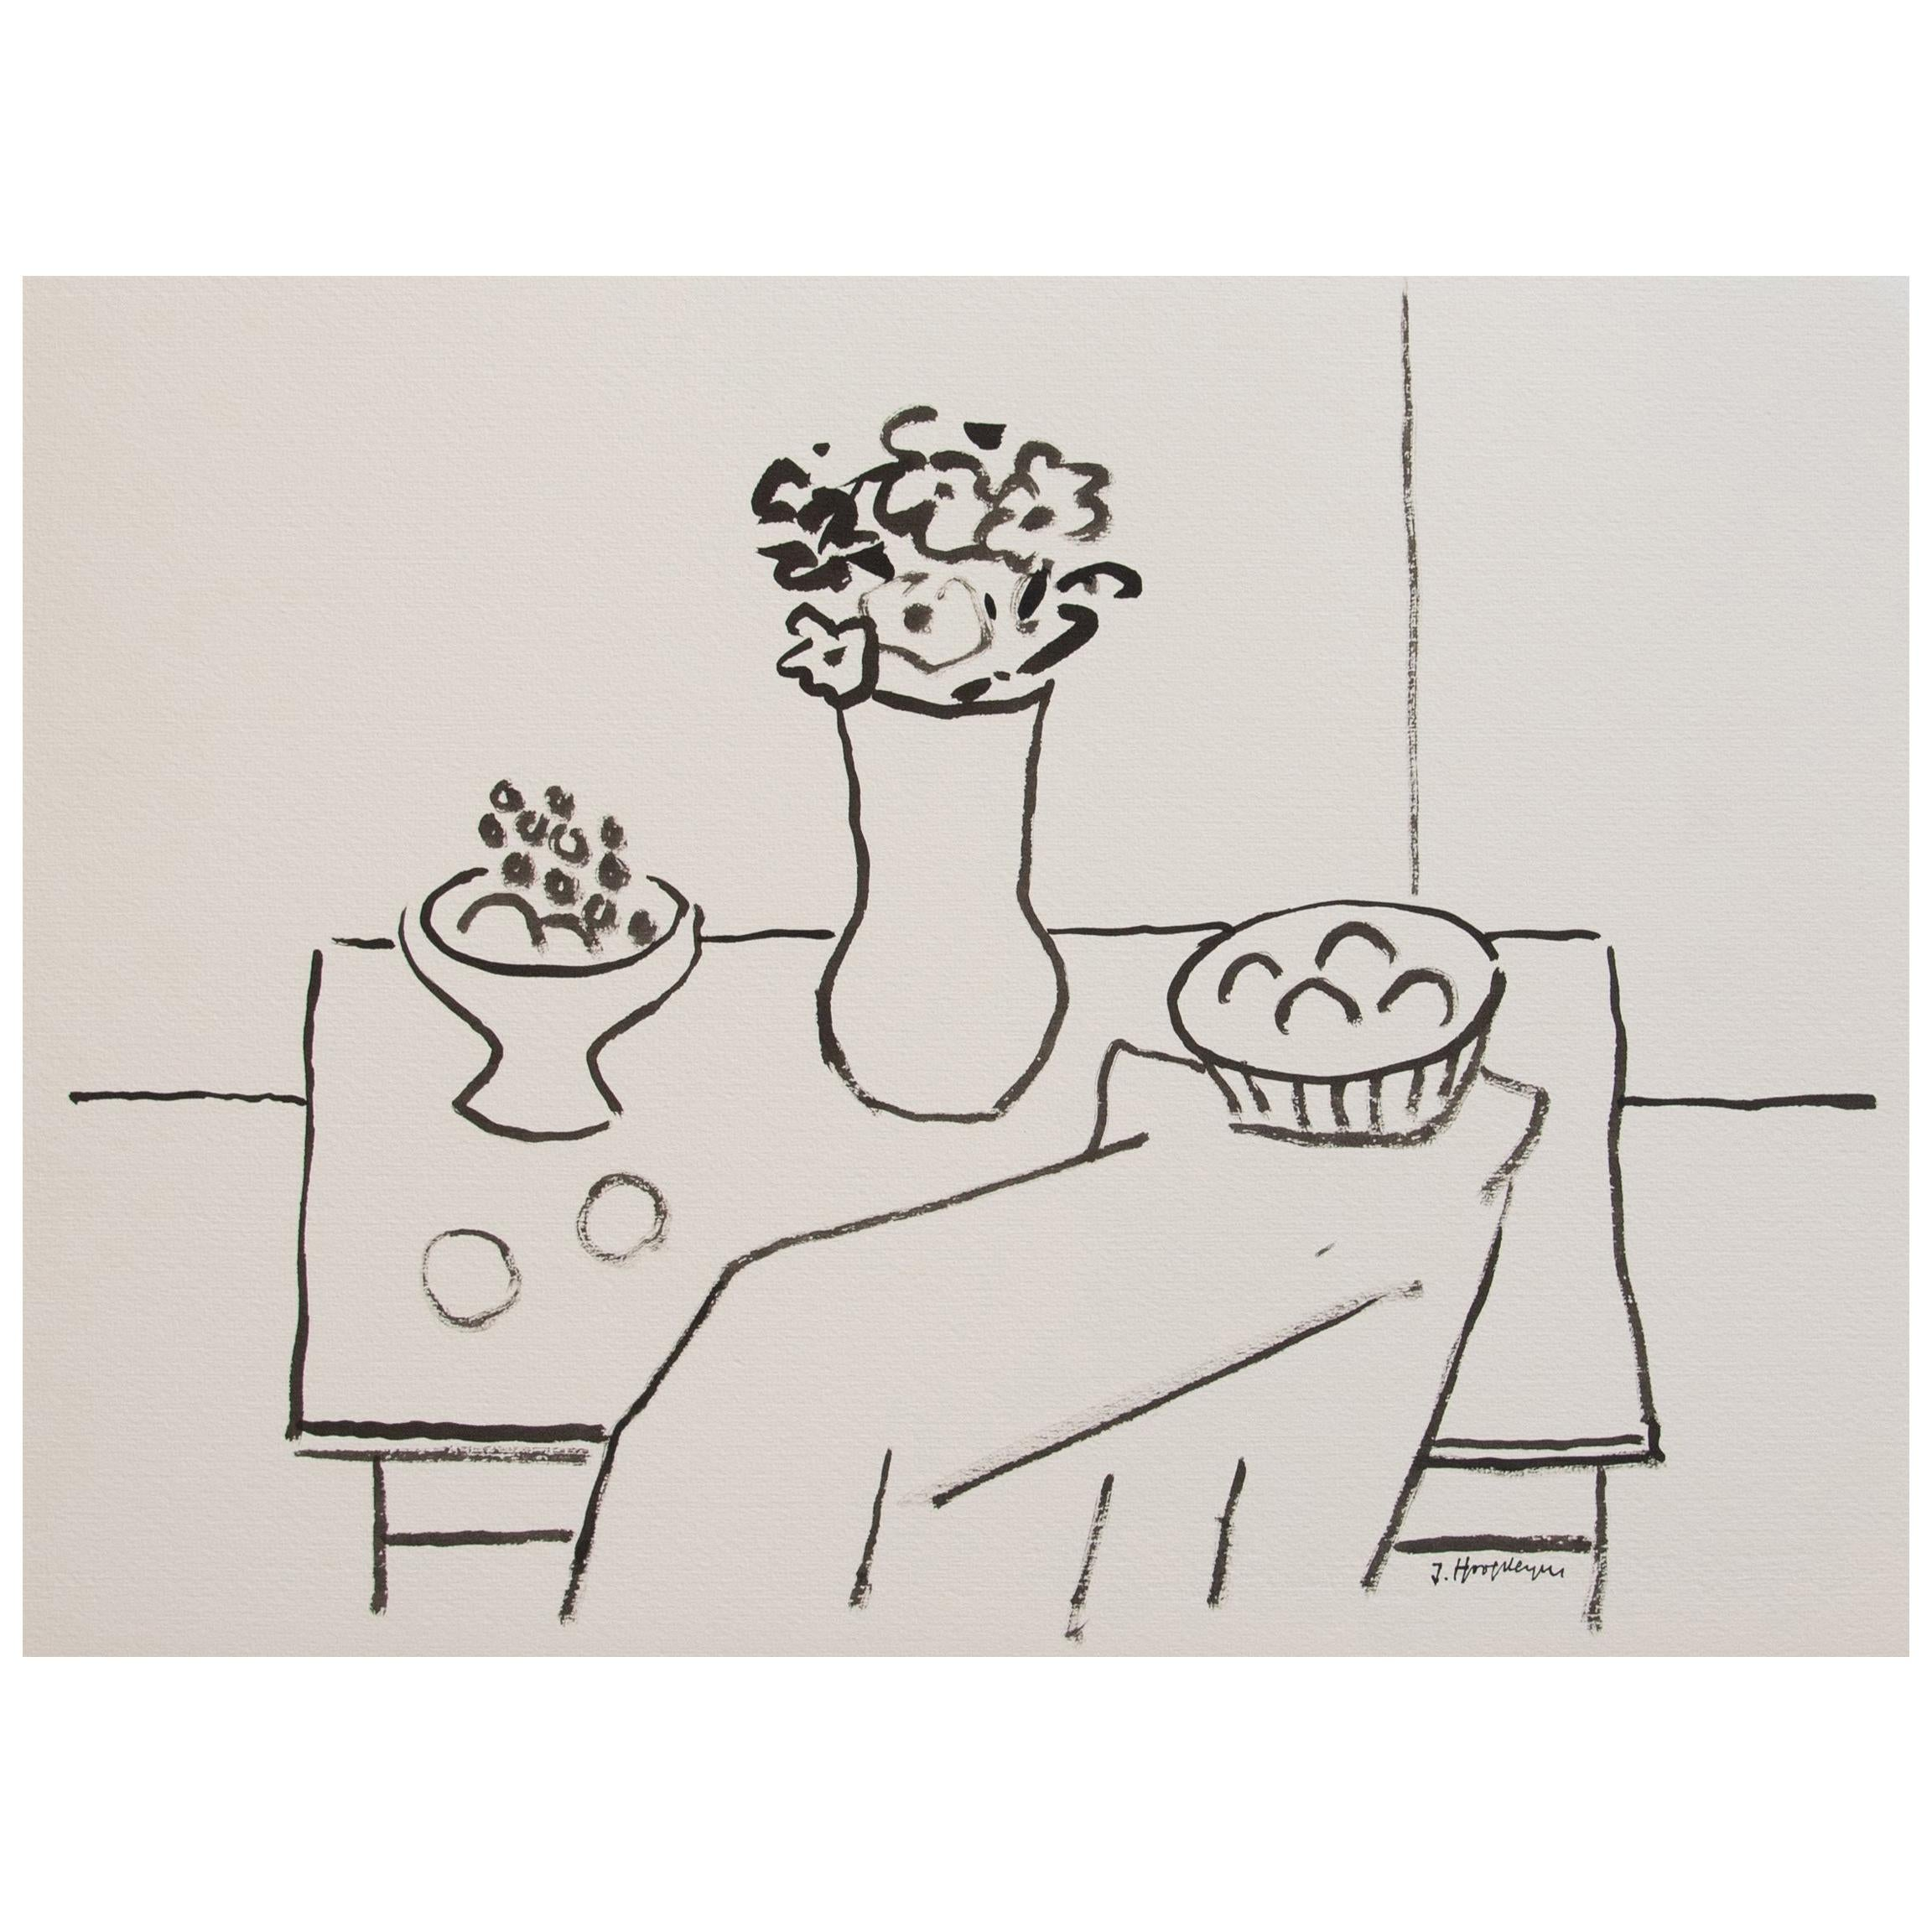 Still Life Unframed Drawing in Ink 100% Cotton Paper Black White Intimist